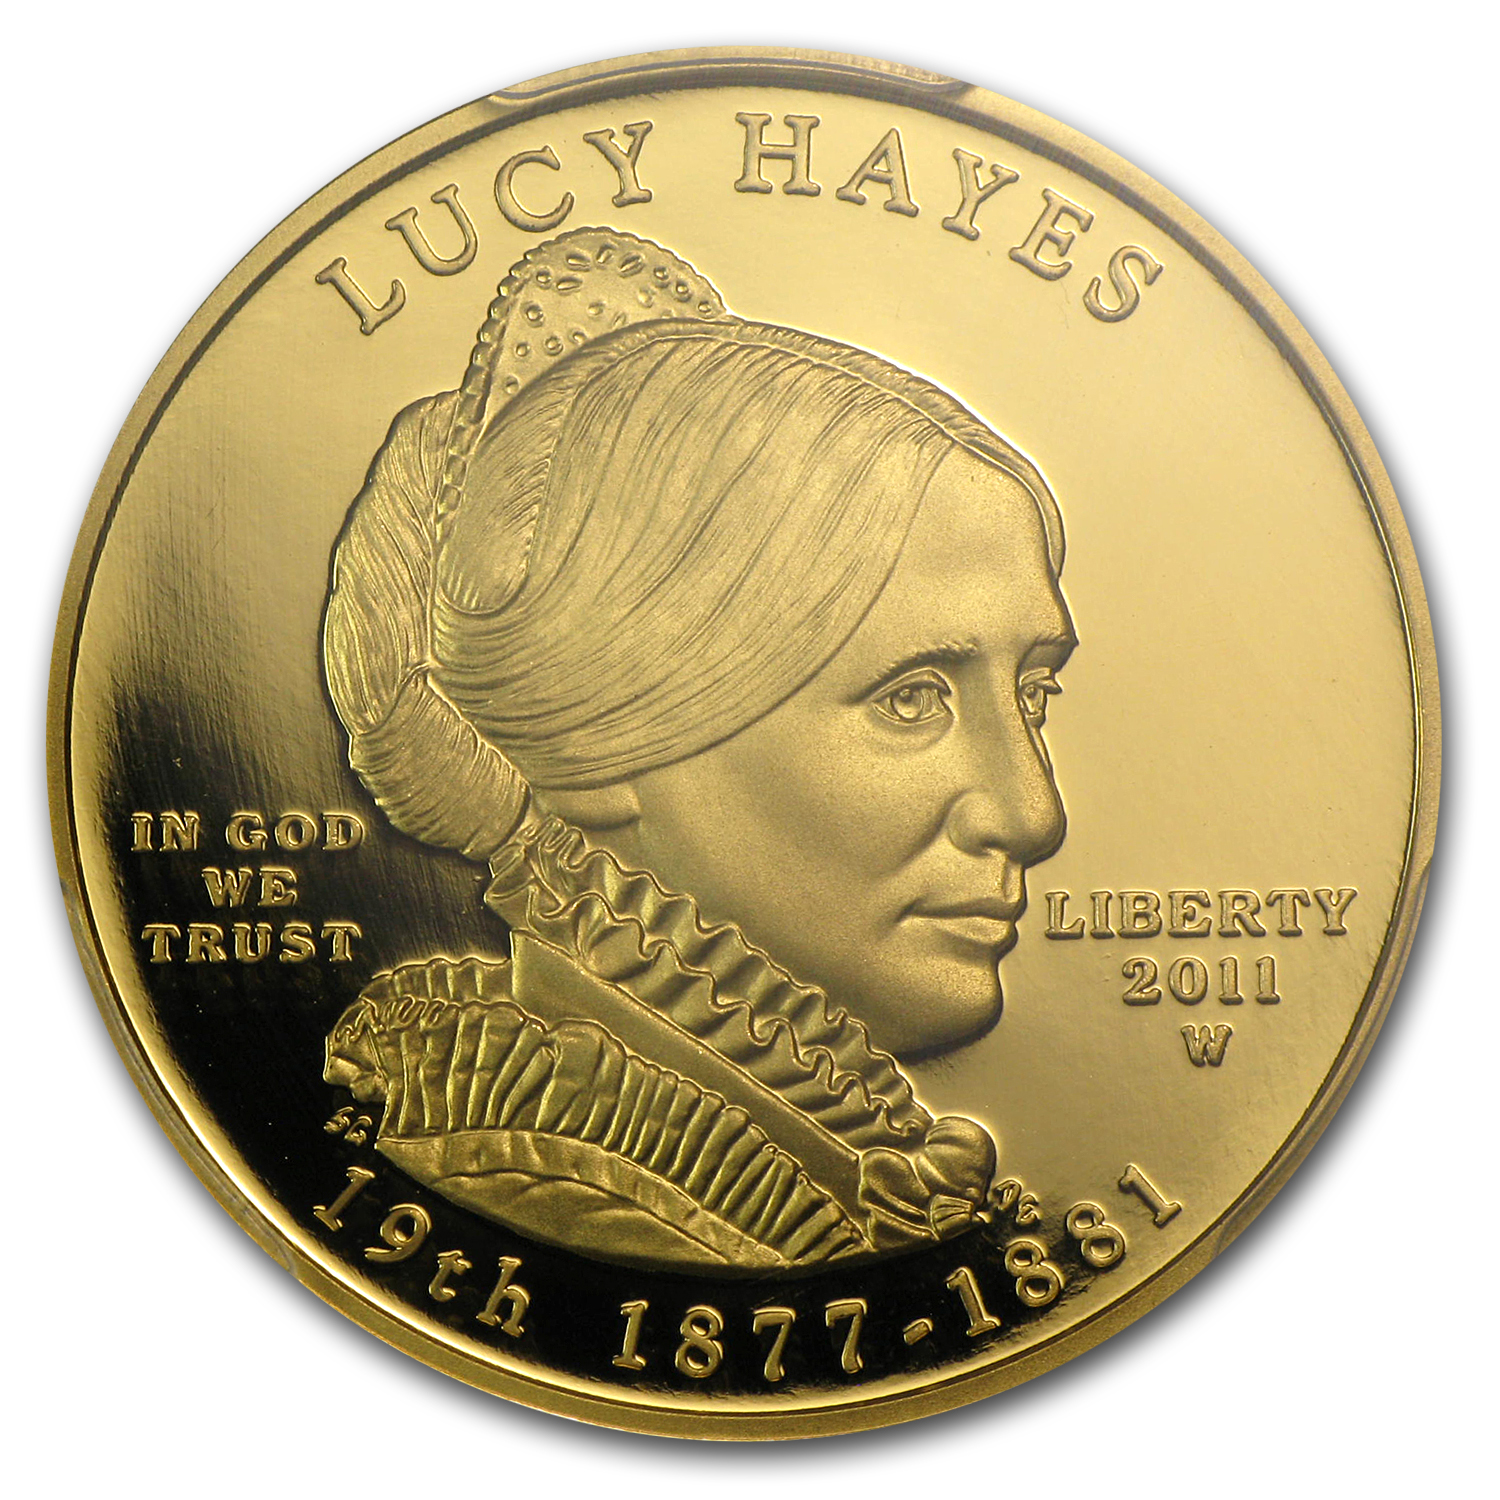 2011-W 1/2 oz Proof Gold Lucy Hayes PR-70 DCAM PCGS